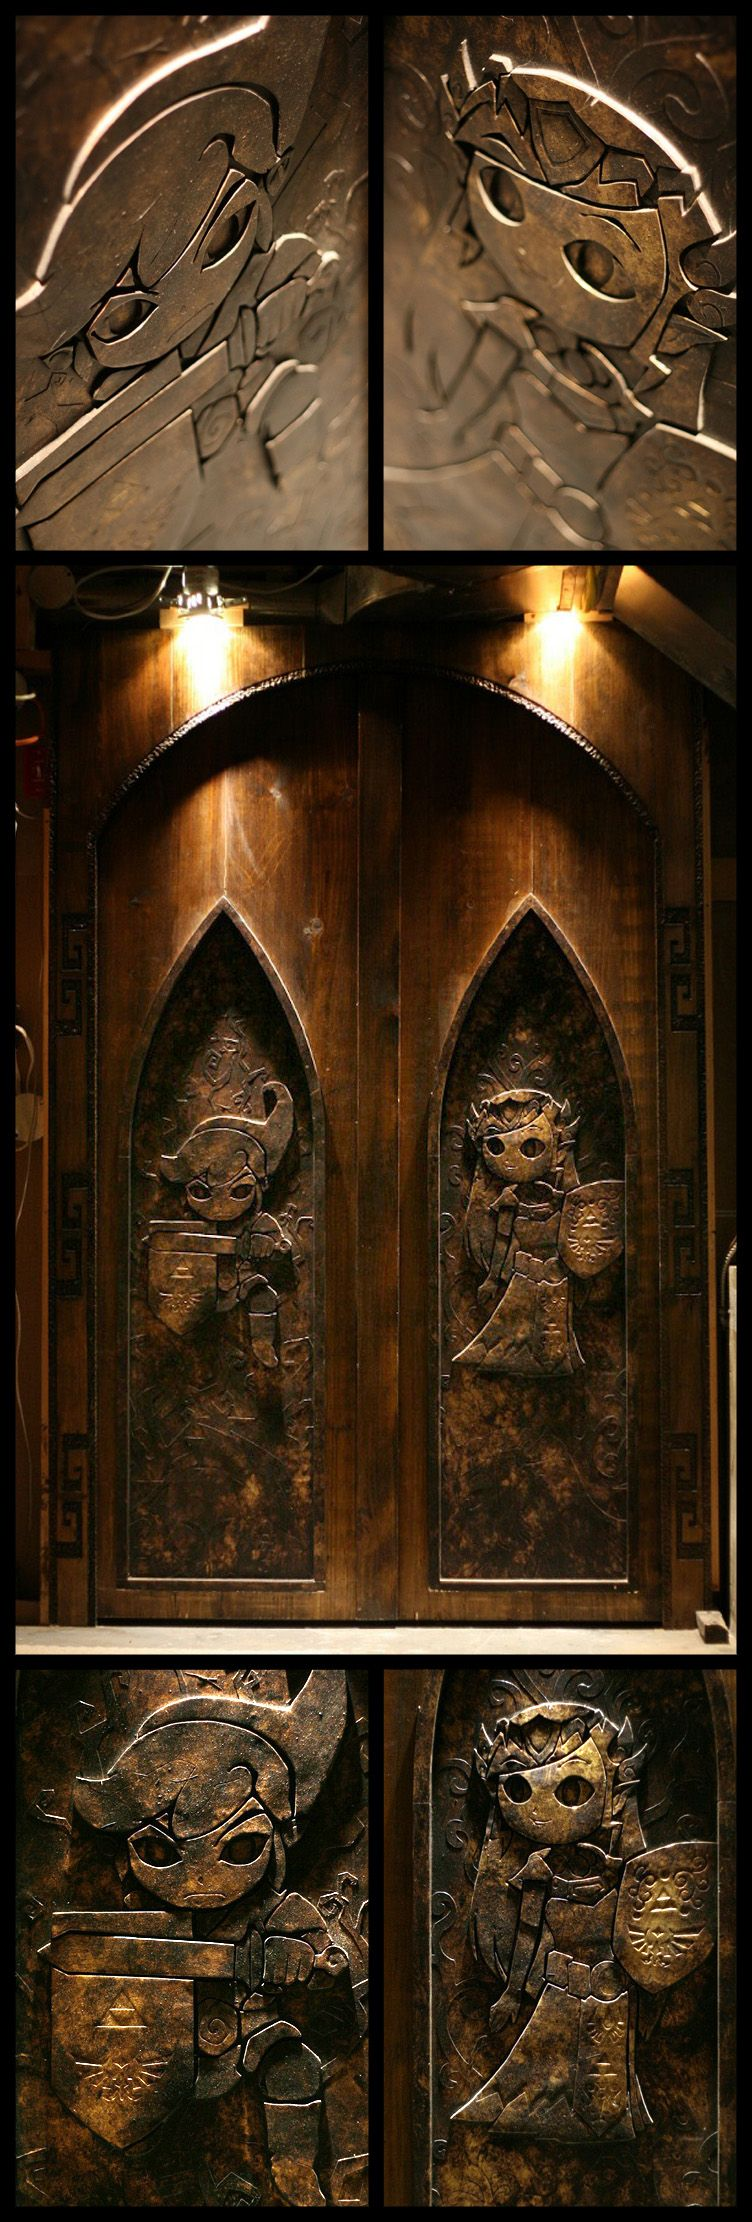 Wooden handcarved legend of zelda doors via avsforums user